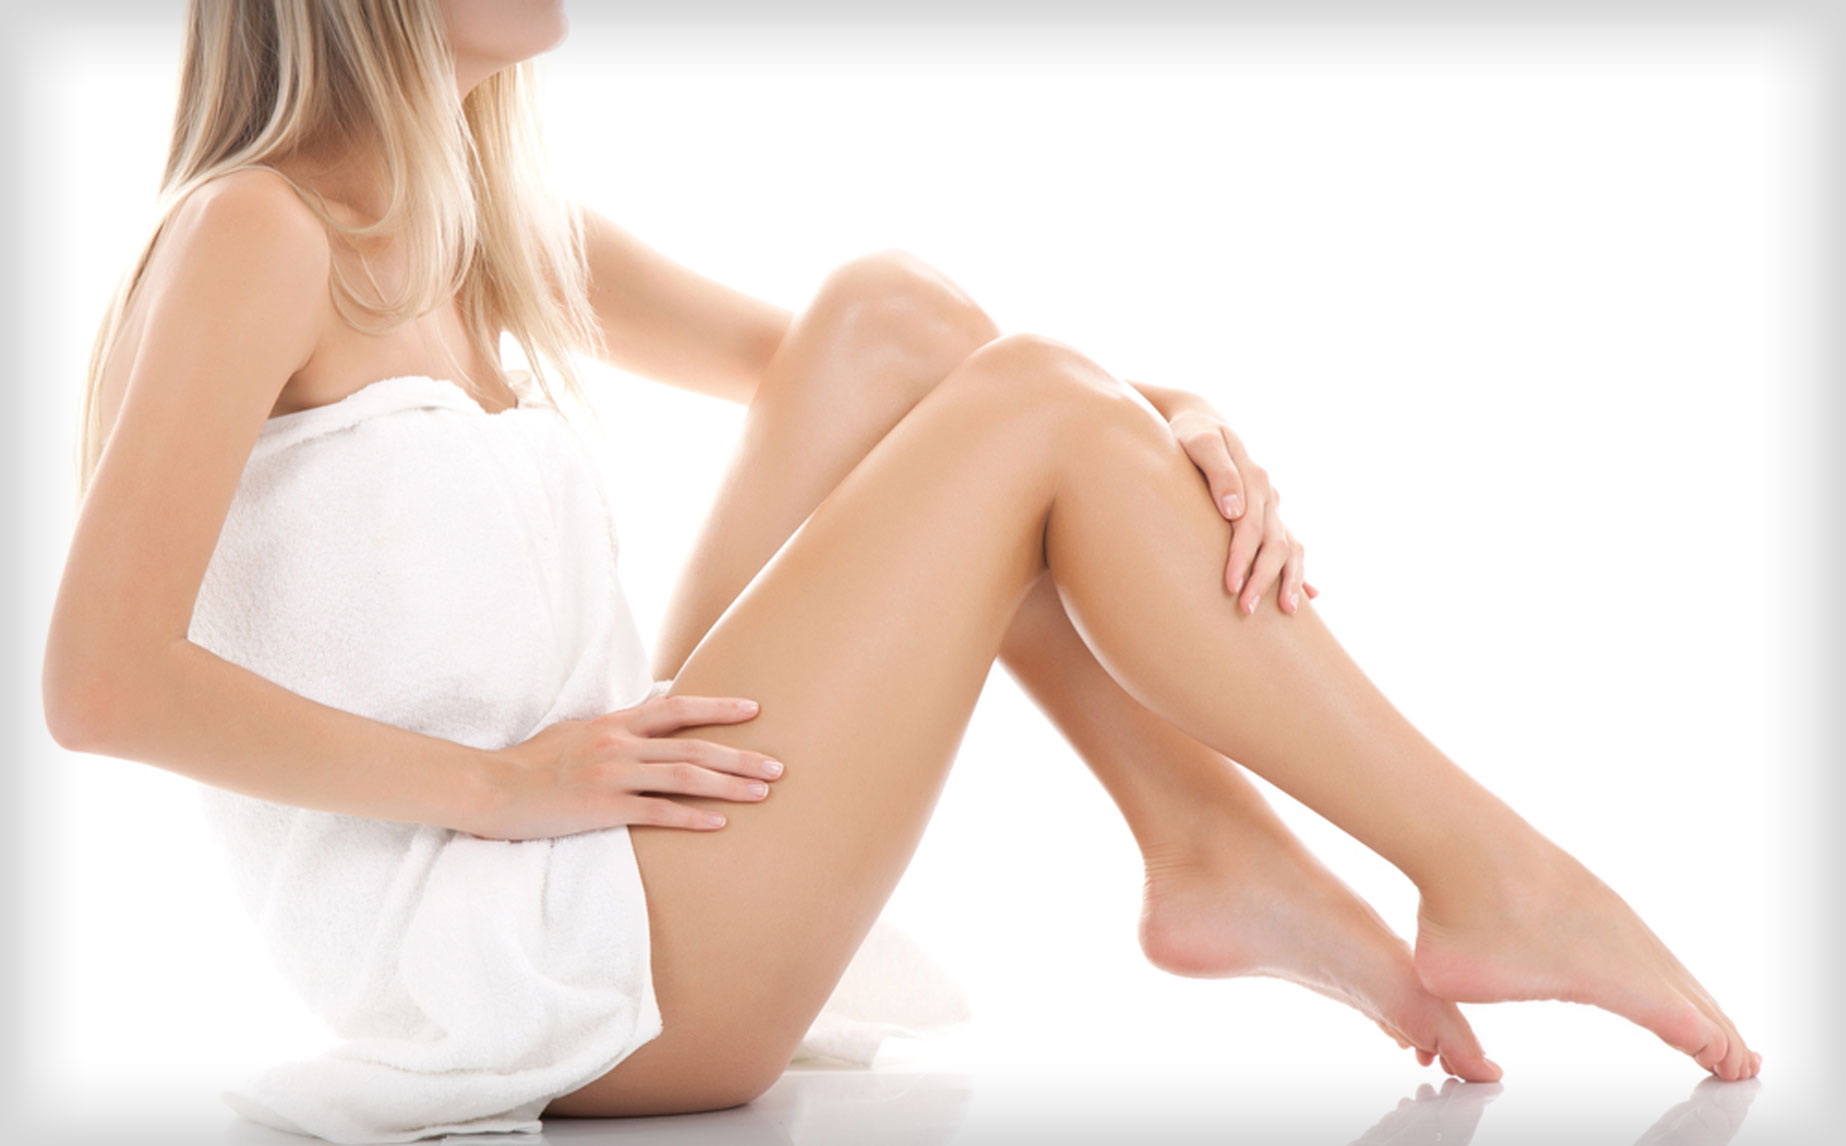 full-body-waxing-w-waxing-salon.jpg